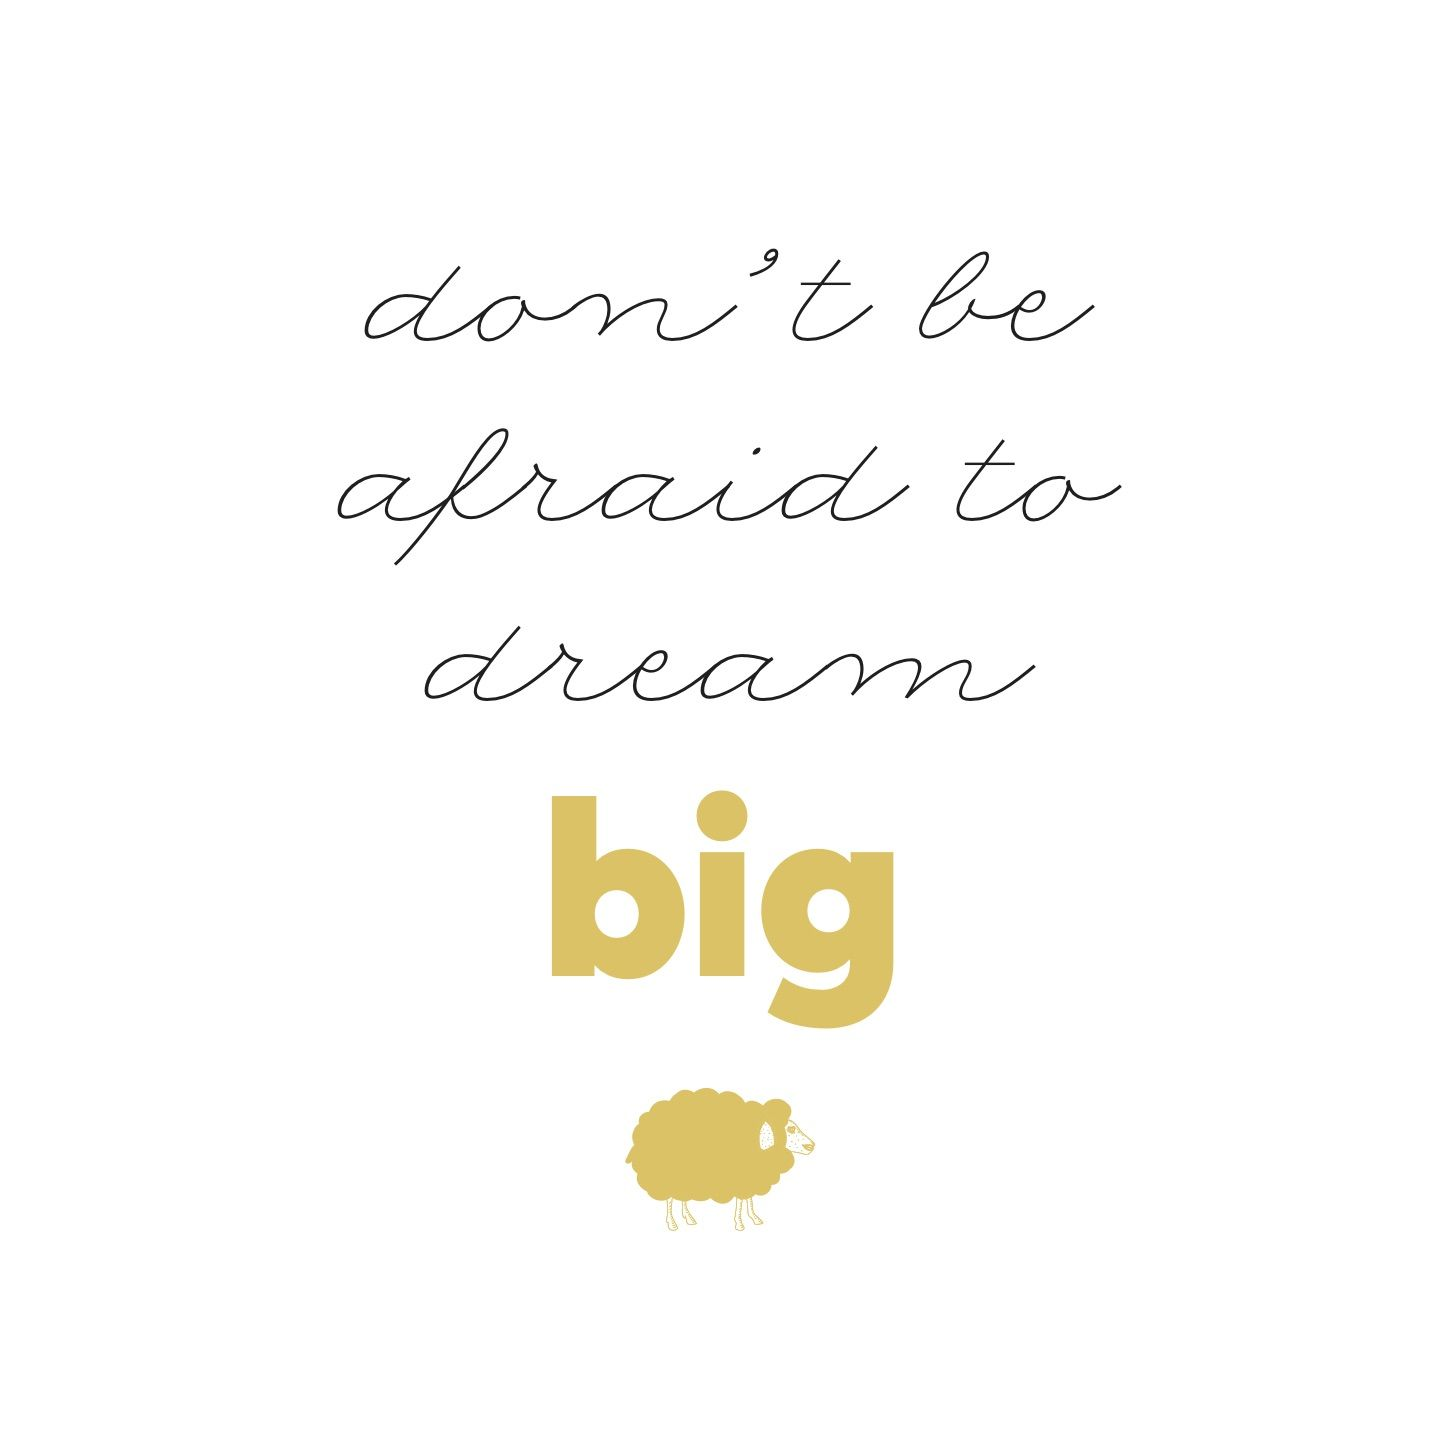 Don't be afraid to dream big #babyquotes #mymamaproject #gianlisa #mymamabag http://gianlisa.com/mymama-shop/